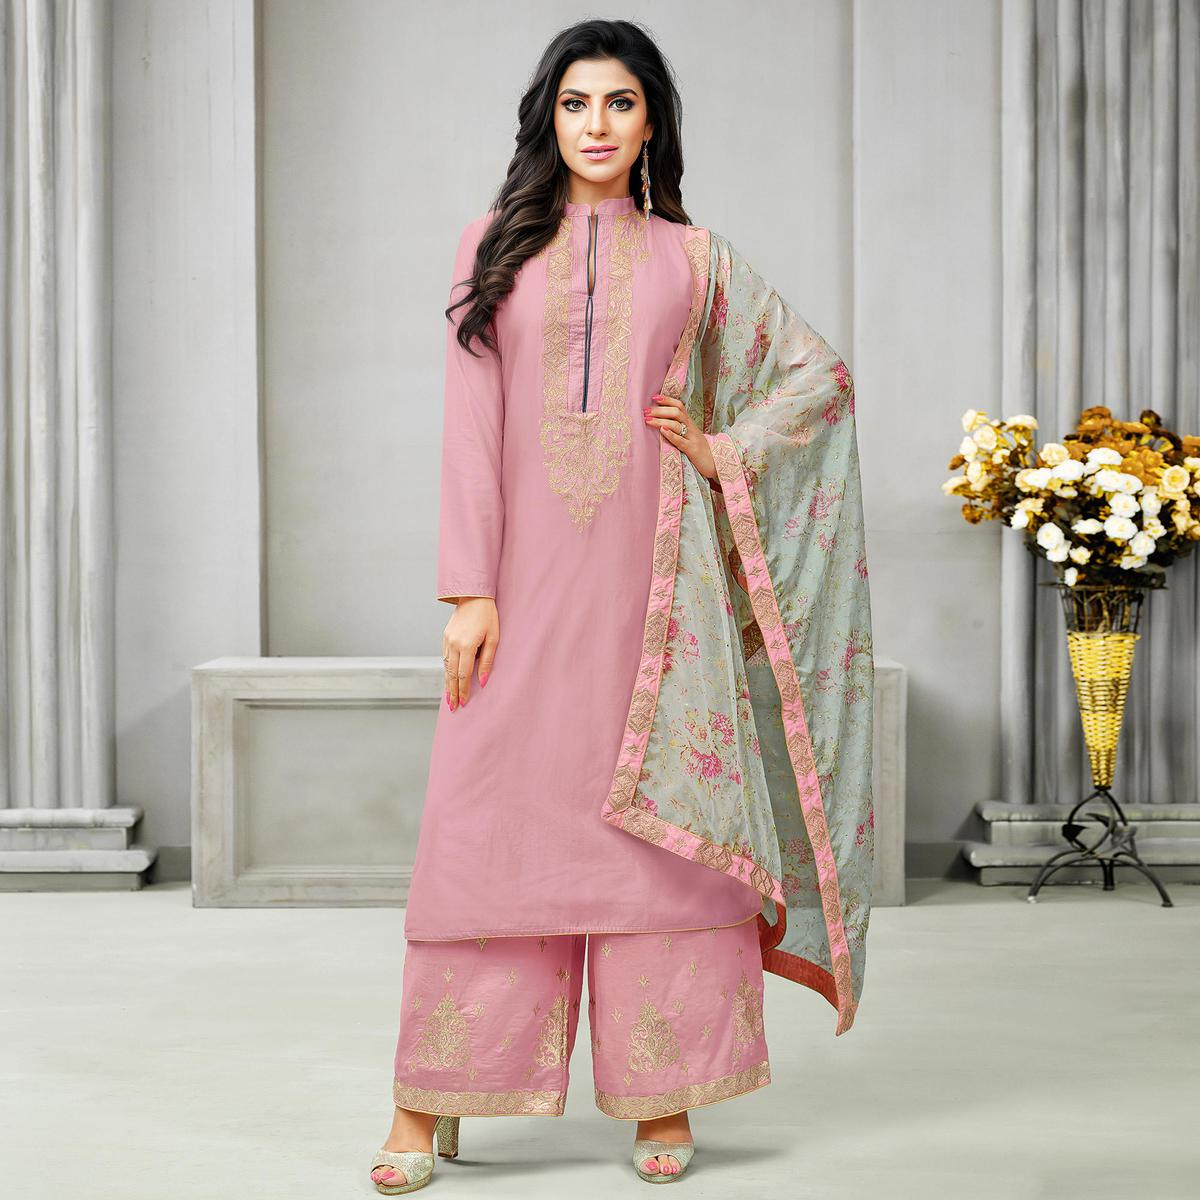 612c7eba18 Buy Charming Pink Colored Partywear Embroidered Cotton Silk Palazzo Suit  online India, Best Prices, Reviews - Peachmod